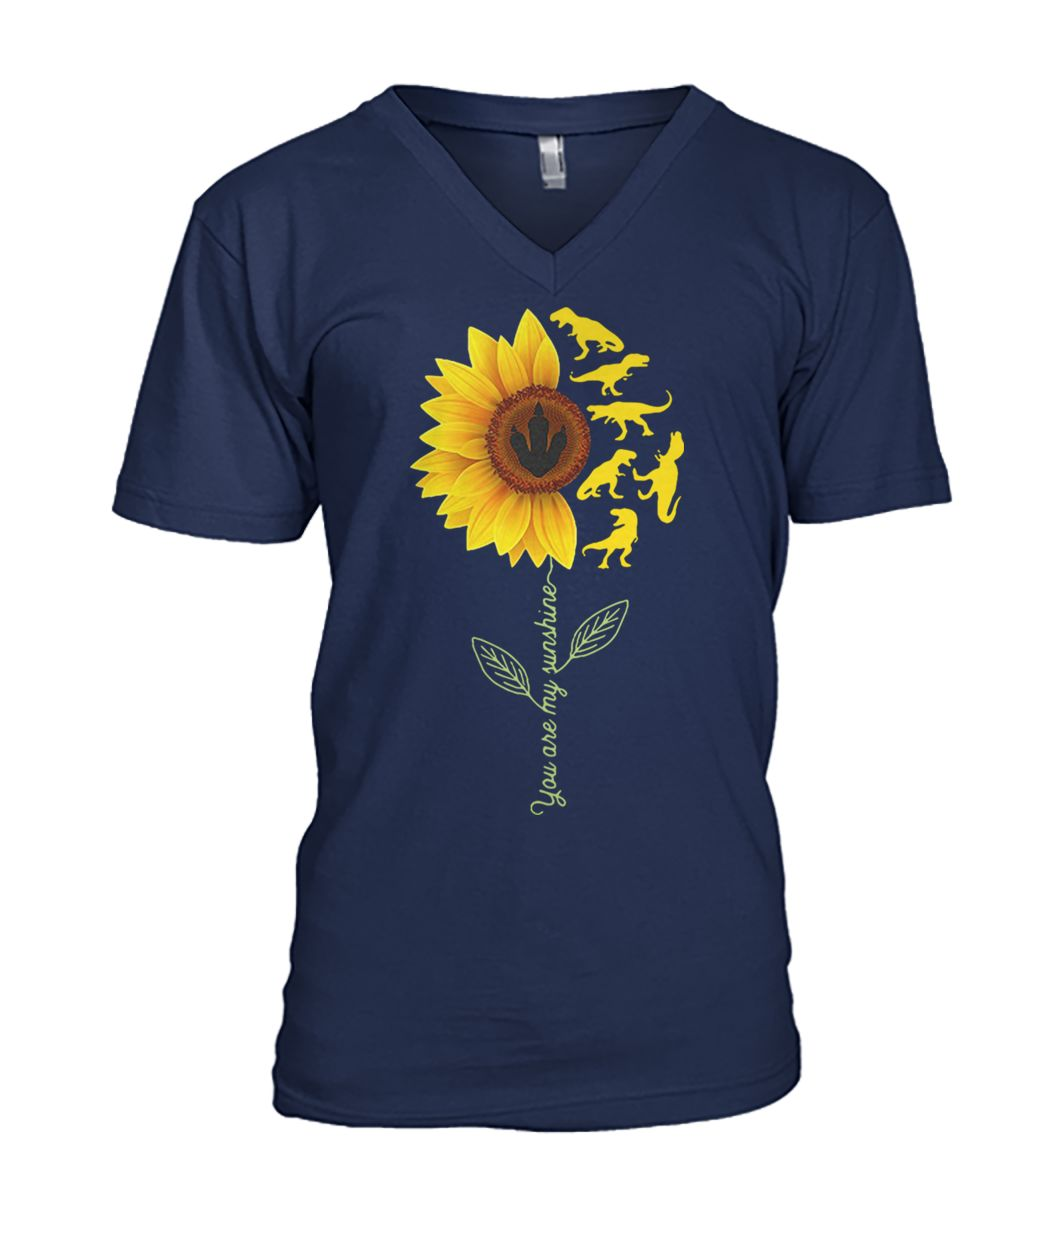 Dinosaurs sunflower you are my sunshine mens v-neck